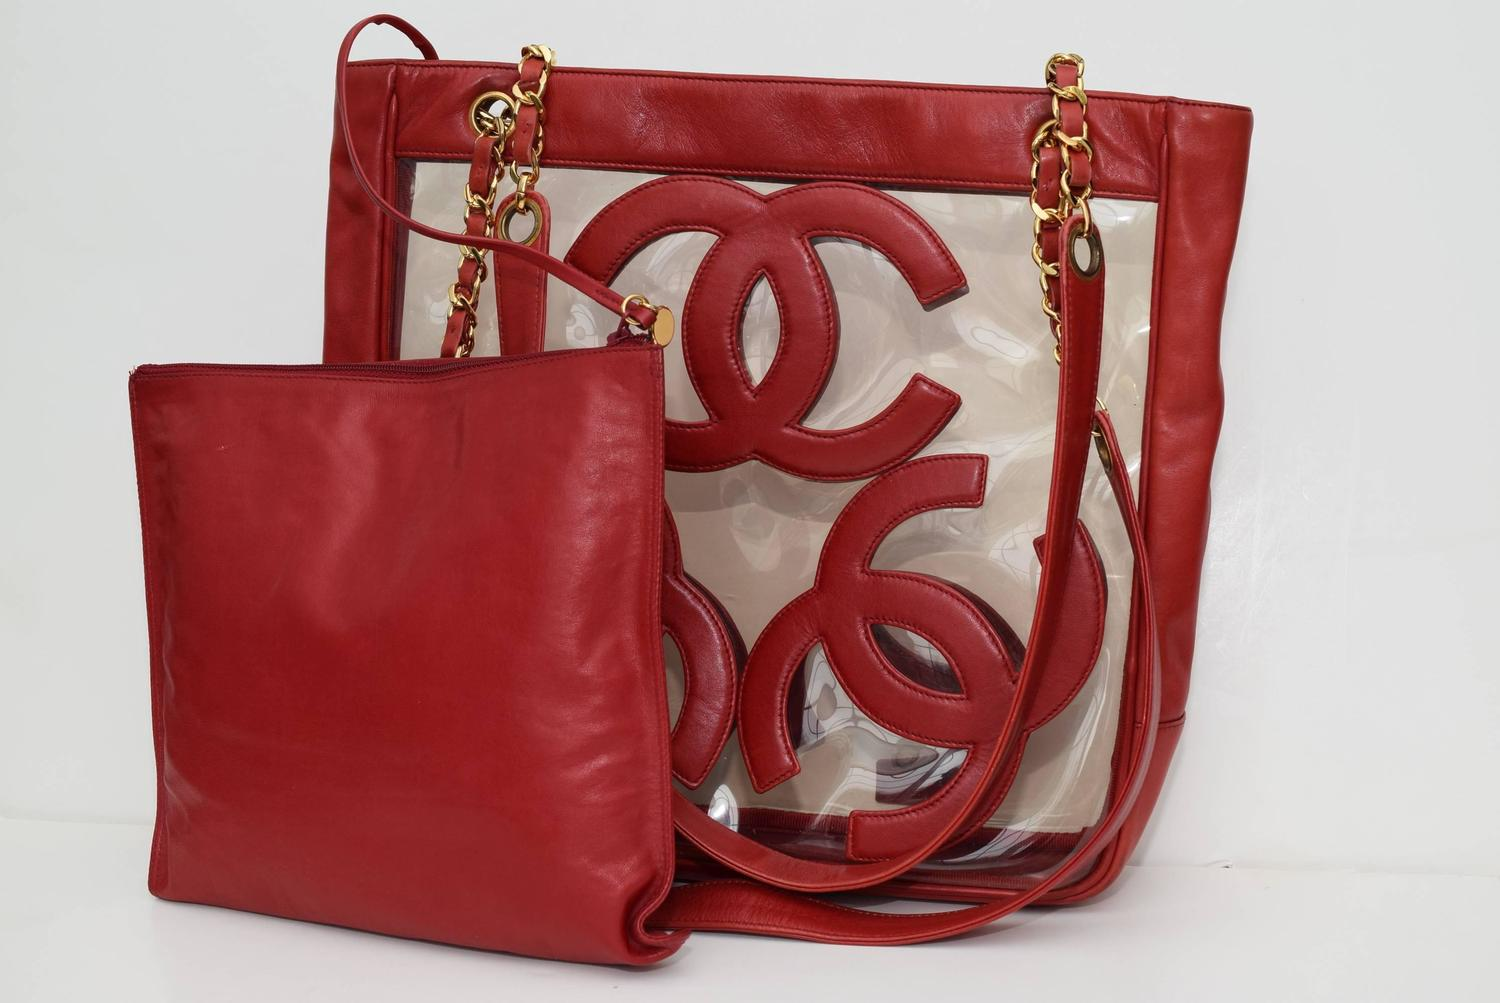 Home Designer Interiors Serial Chanel Rare Clear Vinyl Leather Red Tote Bag At 1stdibs